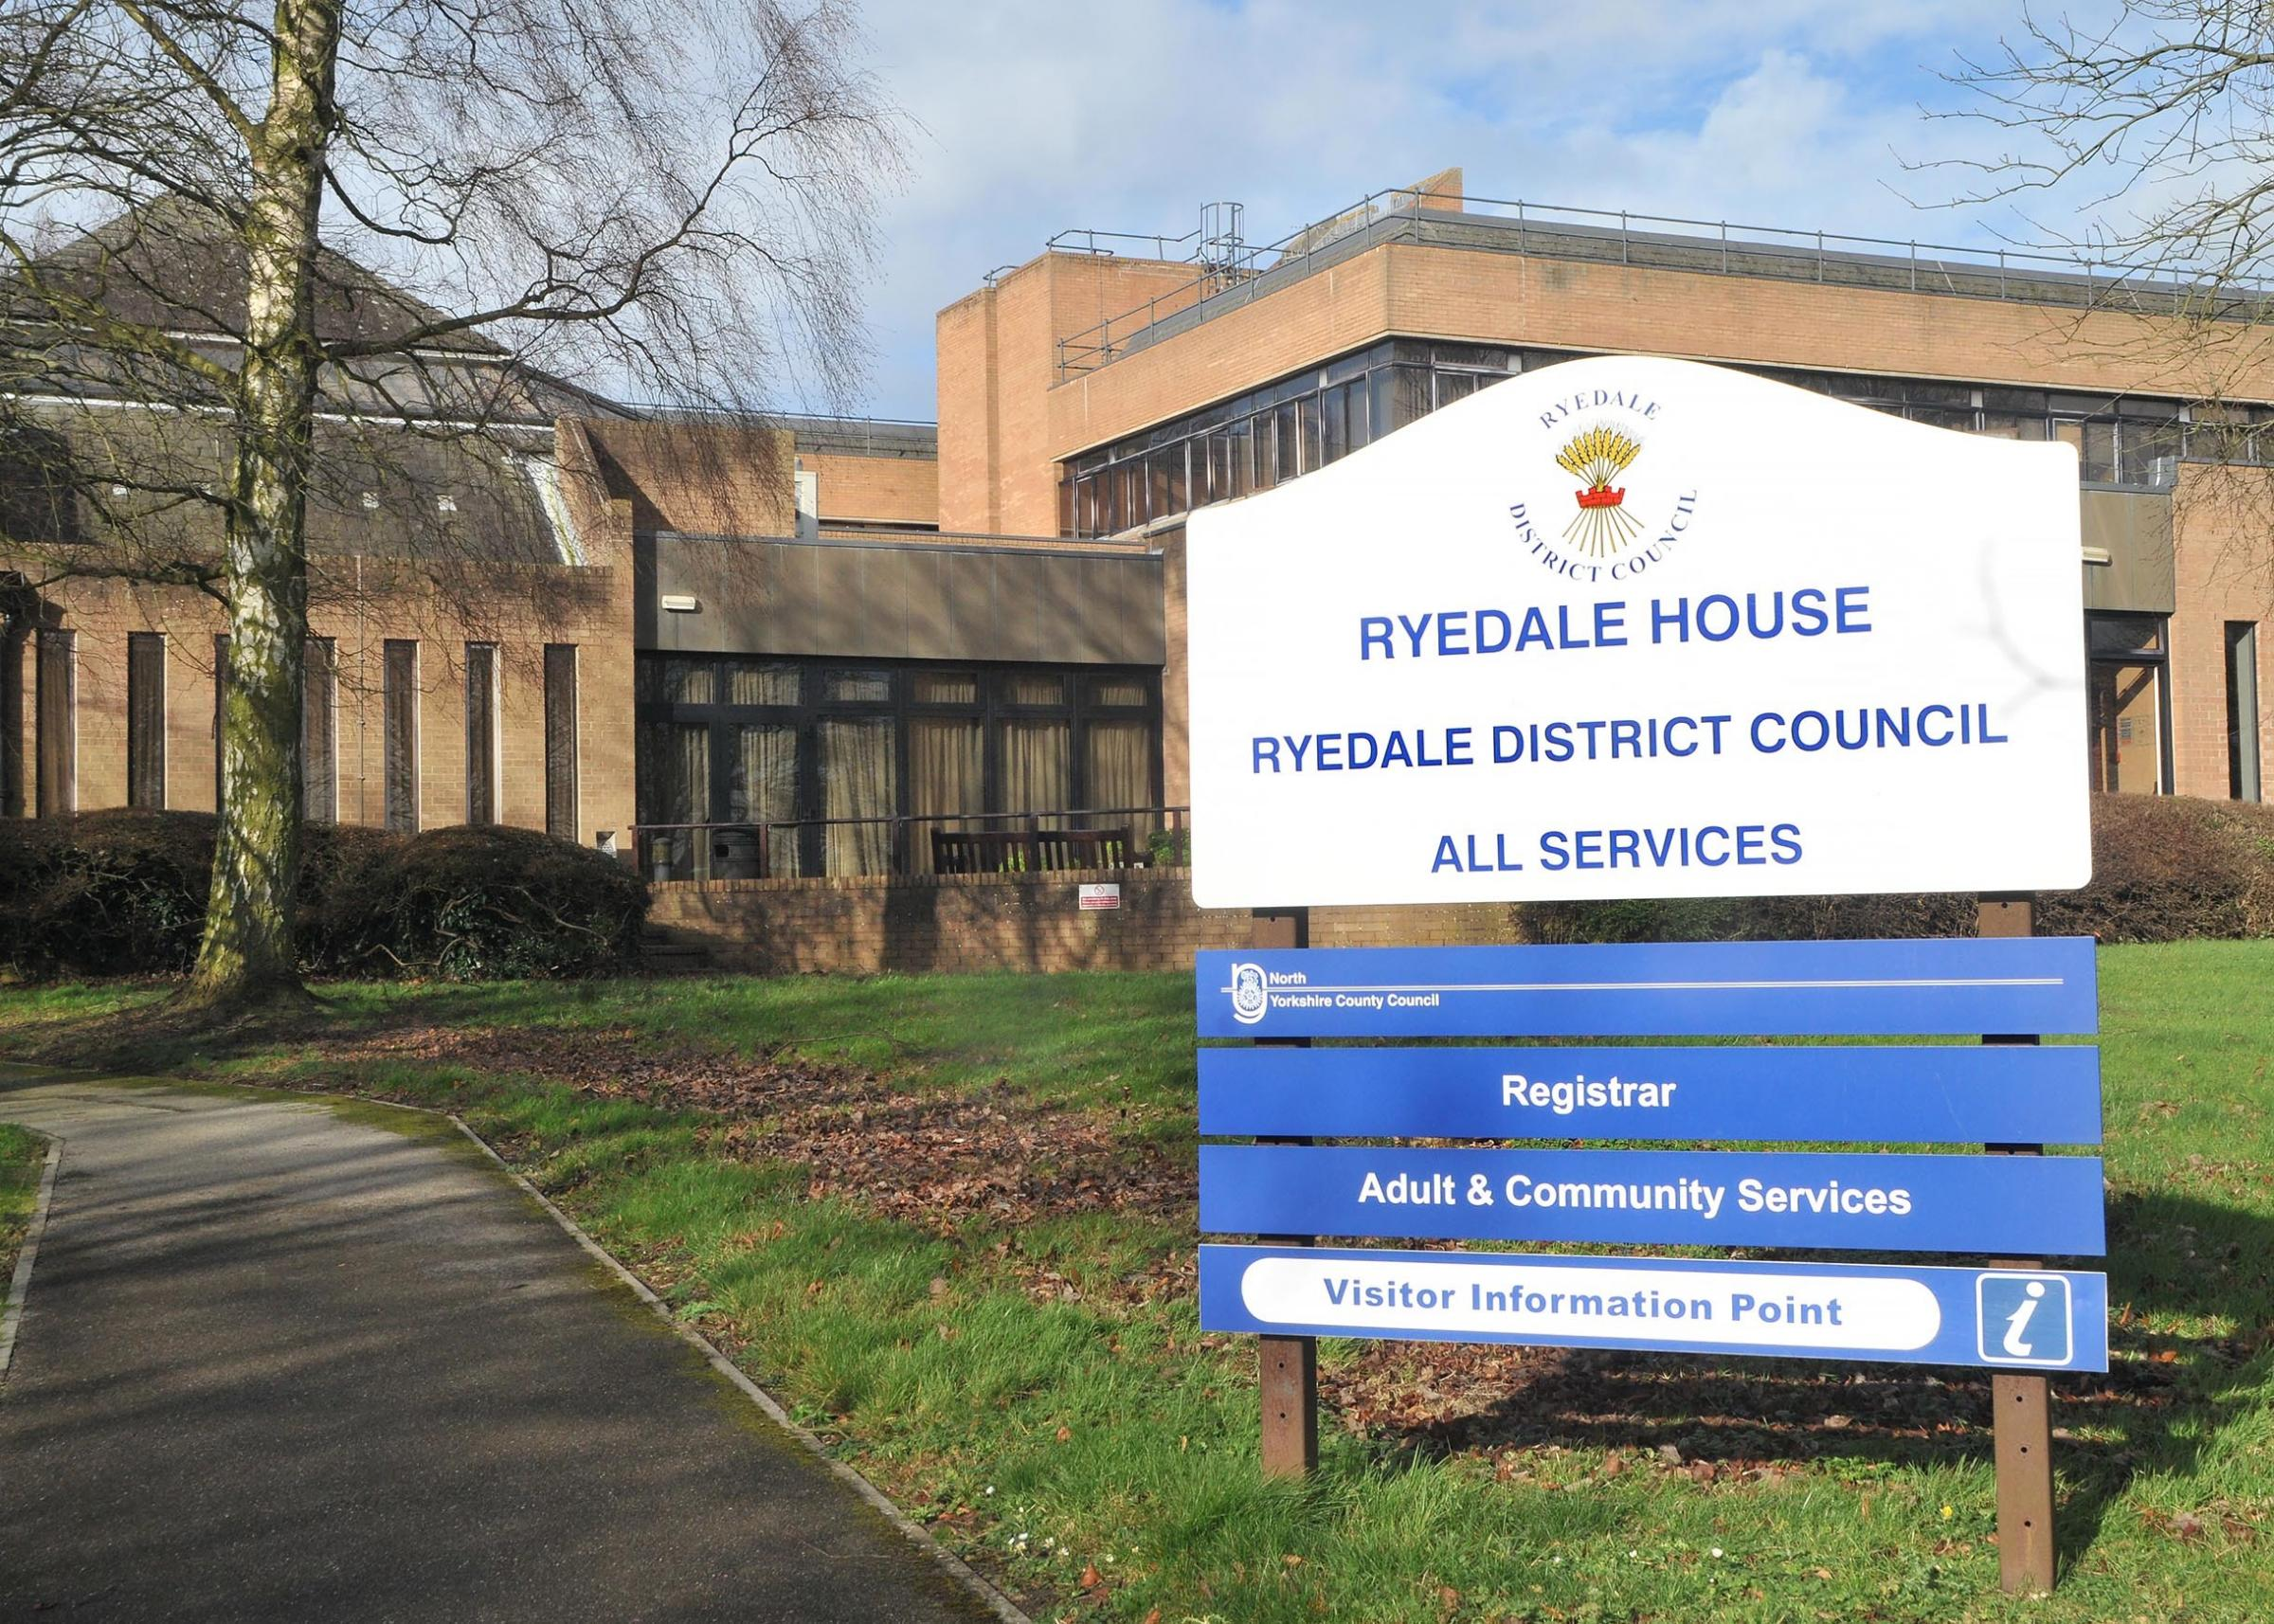 Ryedale District Council in Malton